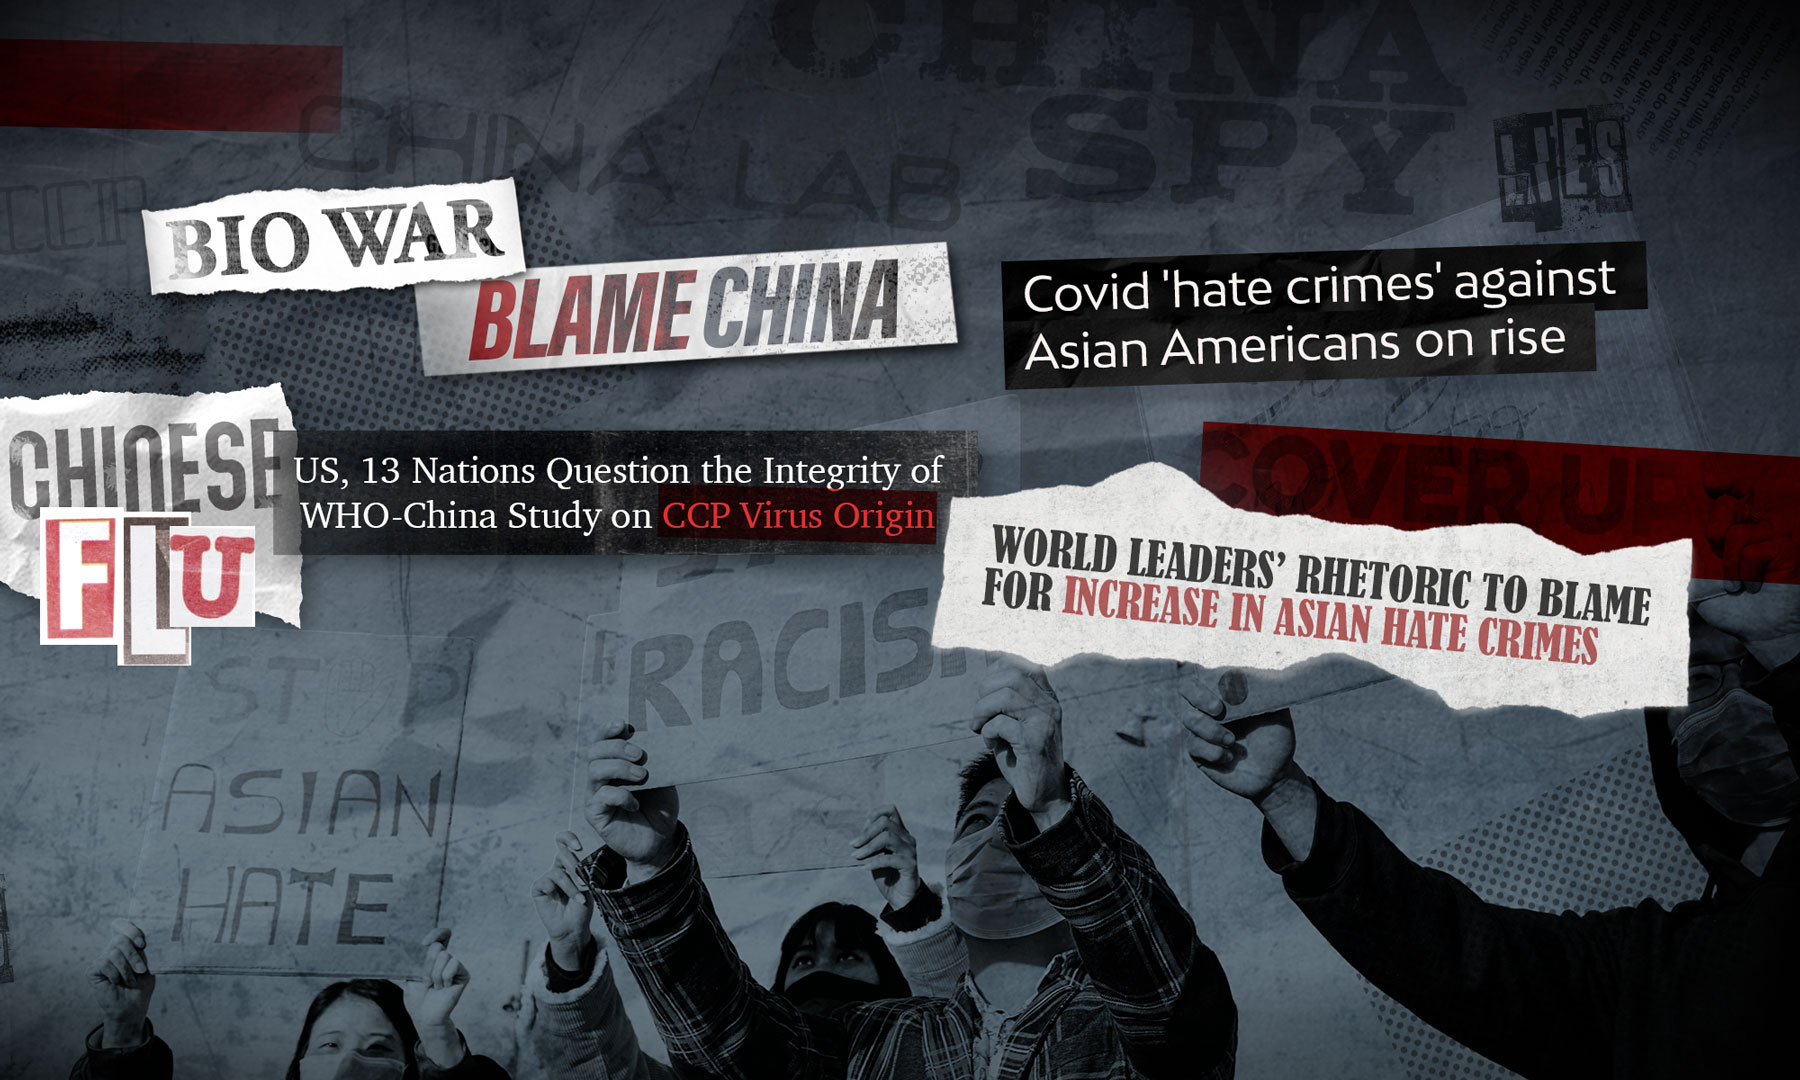 Negative headlines against China around COVID-19 are inspiring anti-Asian hate